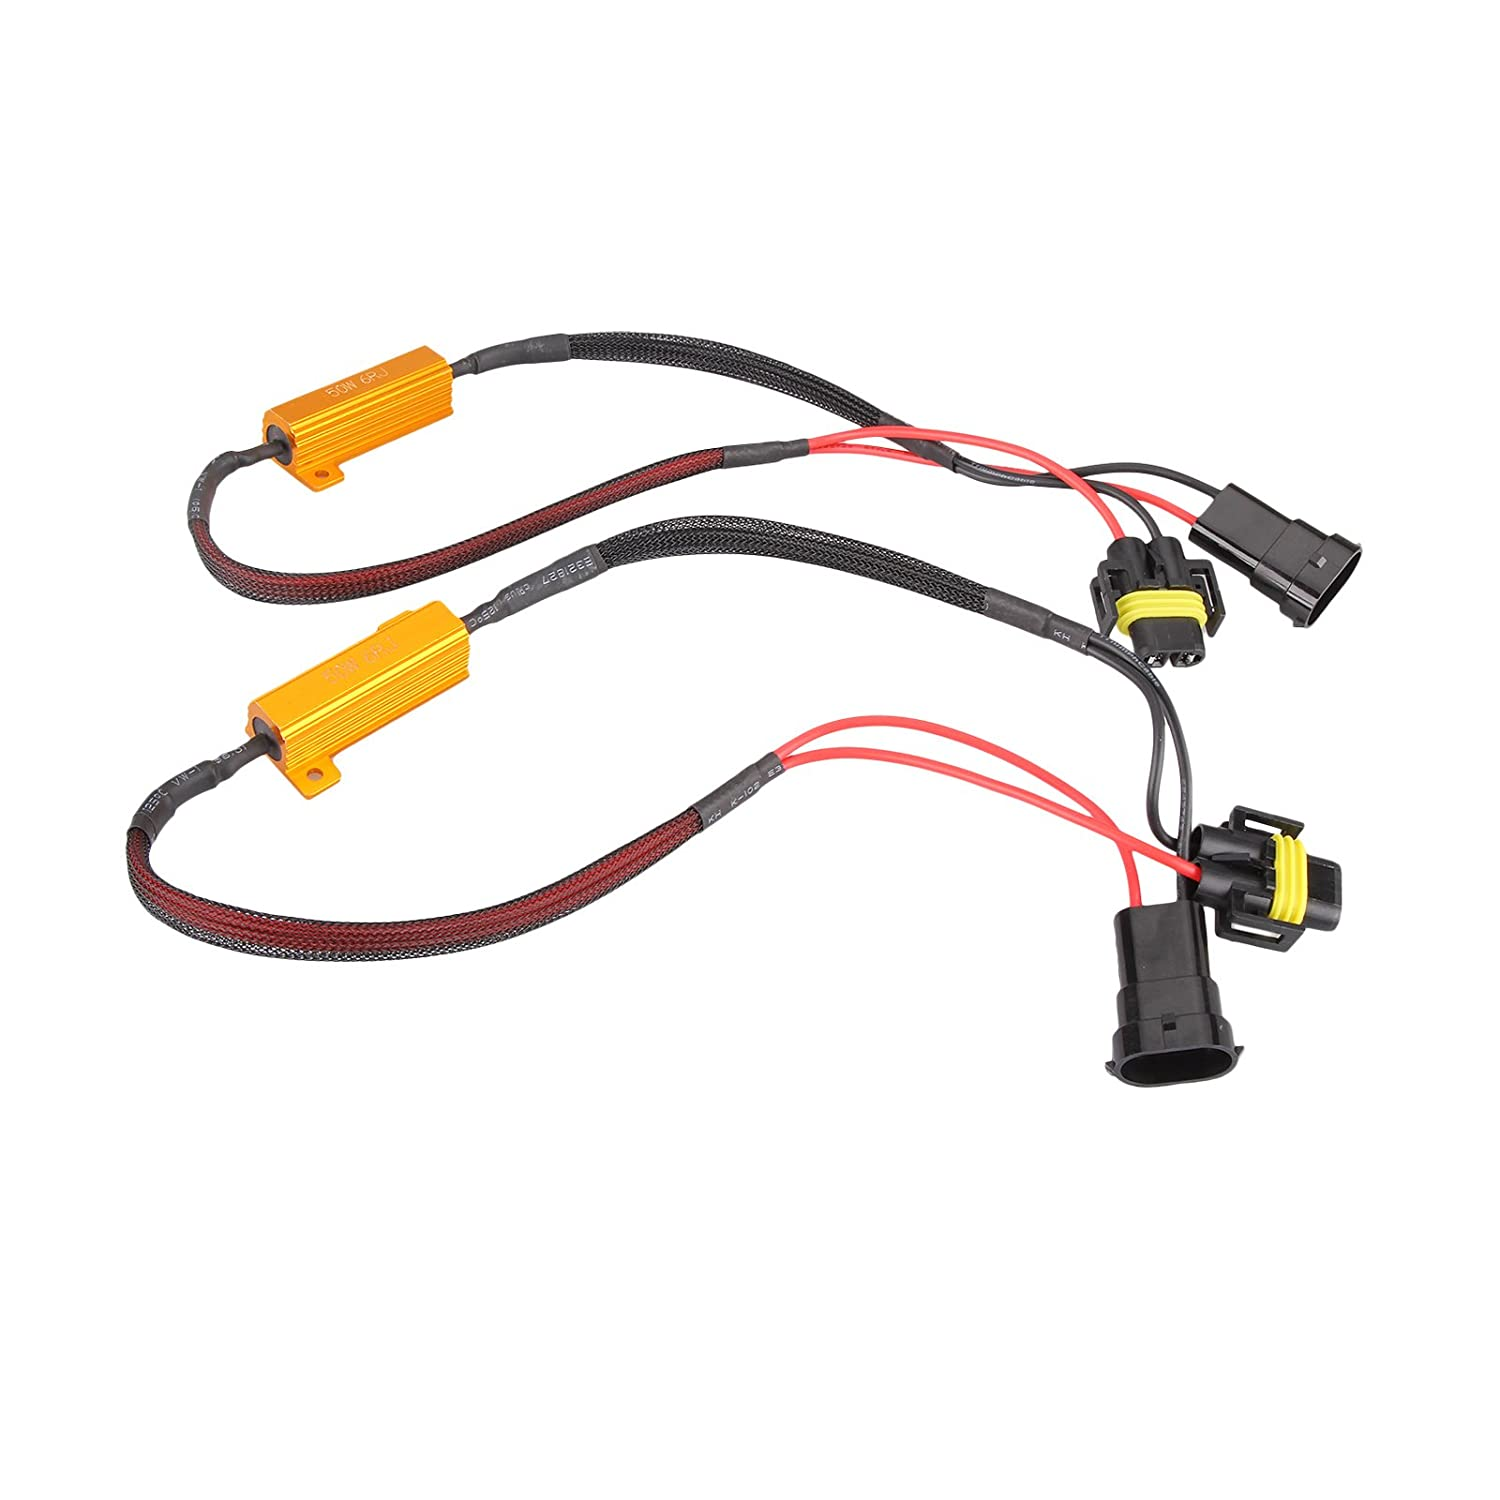 Electric Vehicle Parts 2x H8 H11 Led Drl Fog Light Canbus 50w Load Resistor Error Free Decoder Cancel At All Costs Atv,rv,boat & Other Vehicle